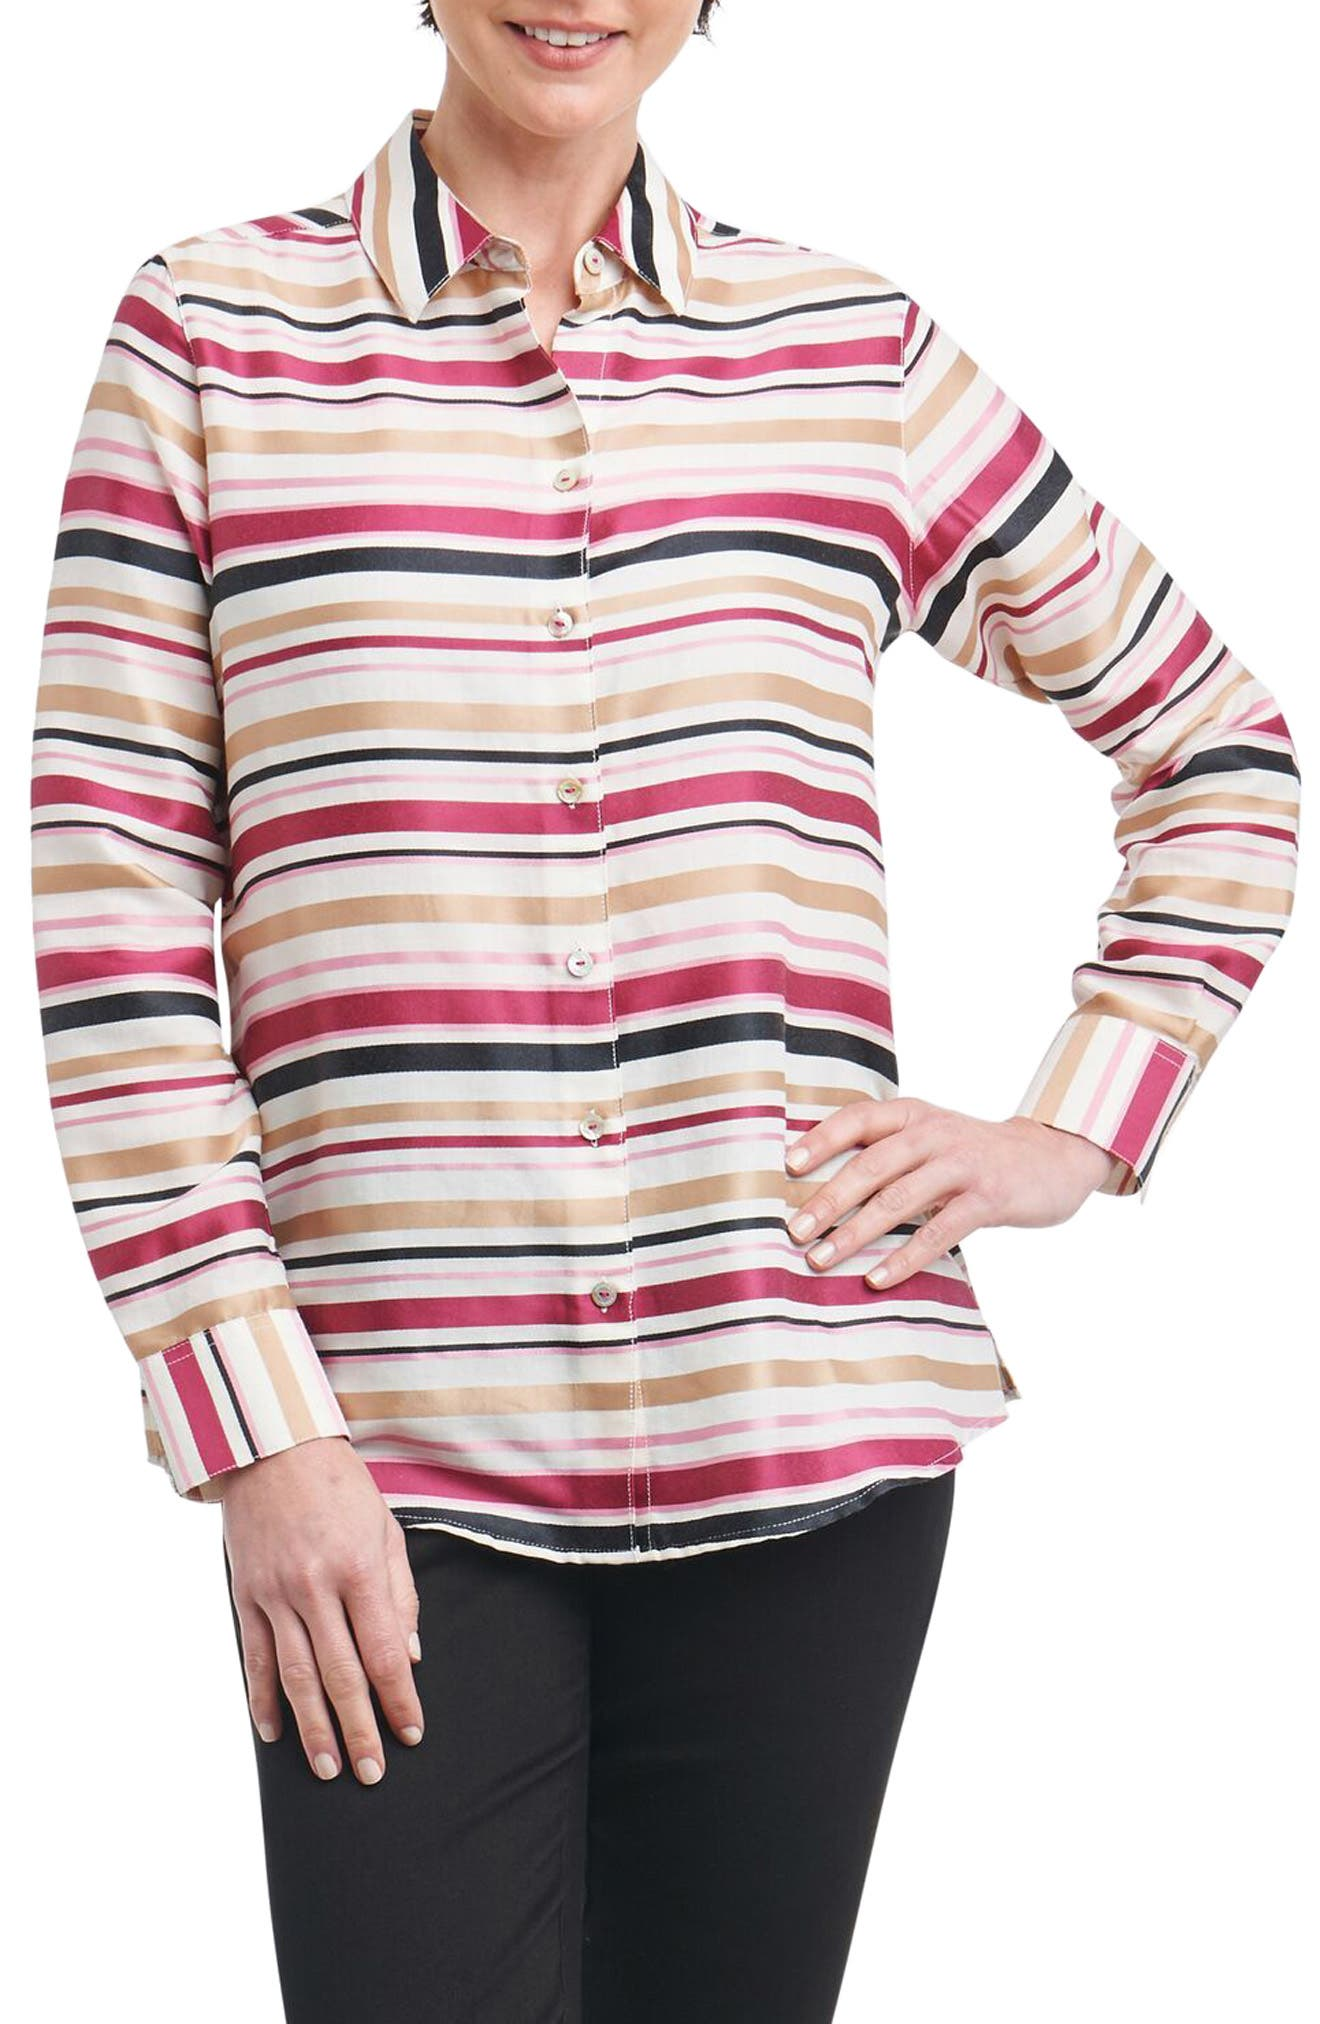 Alternate Image 1 Selected - Foxcroft Addison Stripe Print Sateen Shirt (Regular & Petite)